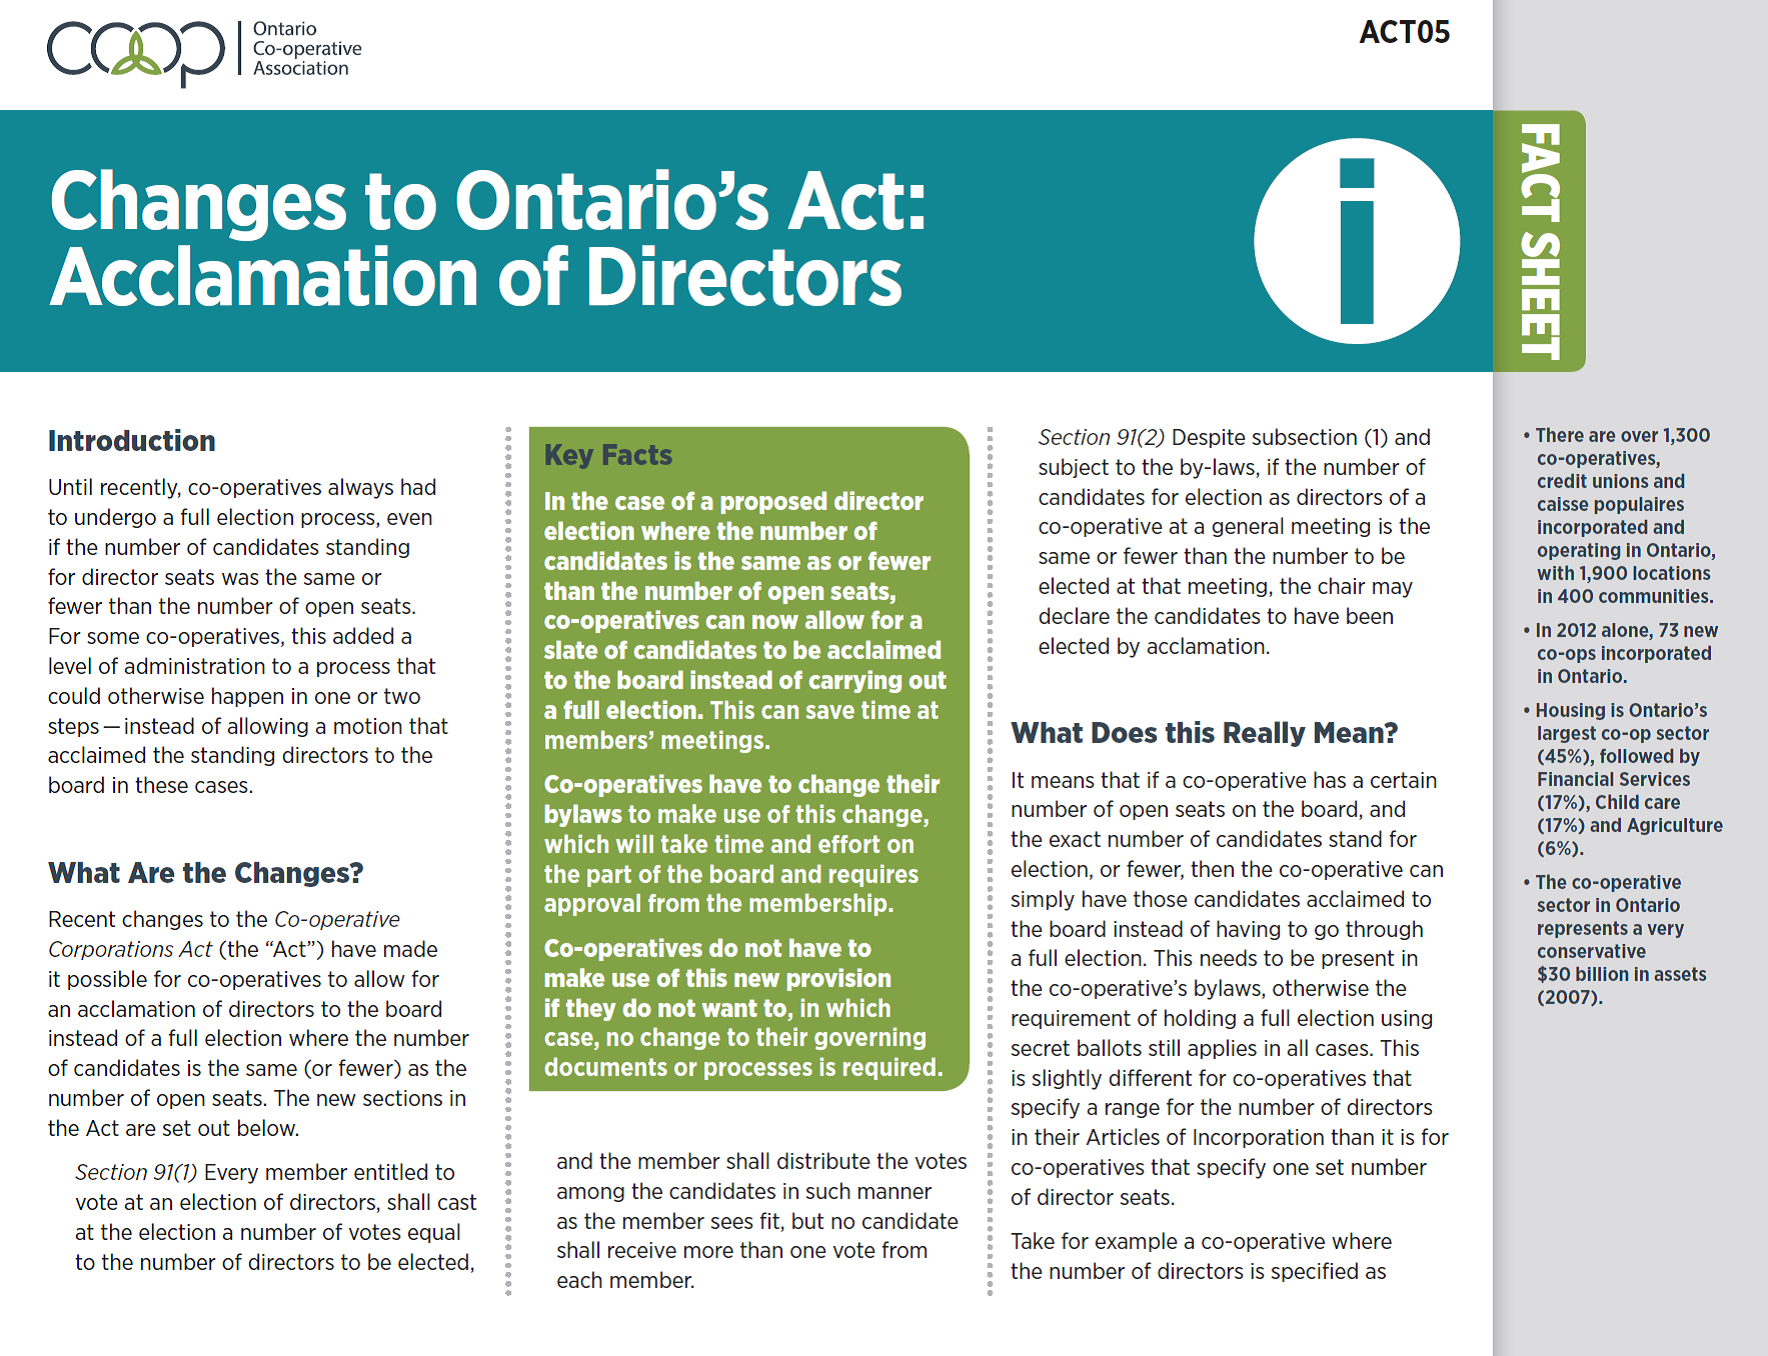 Changes to the Ontario's Act: Acclamation of Directors